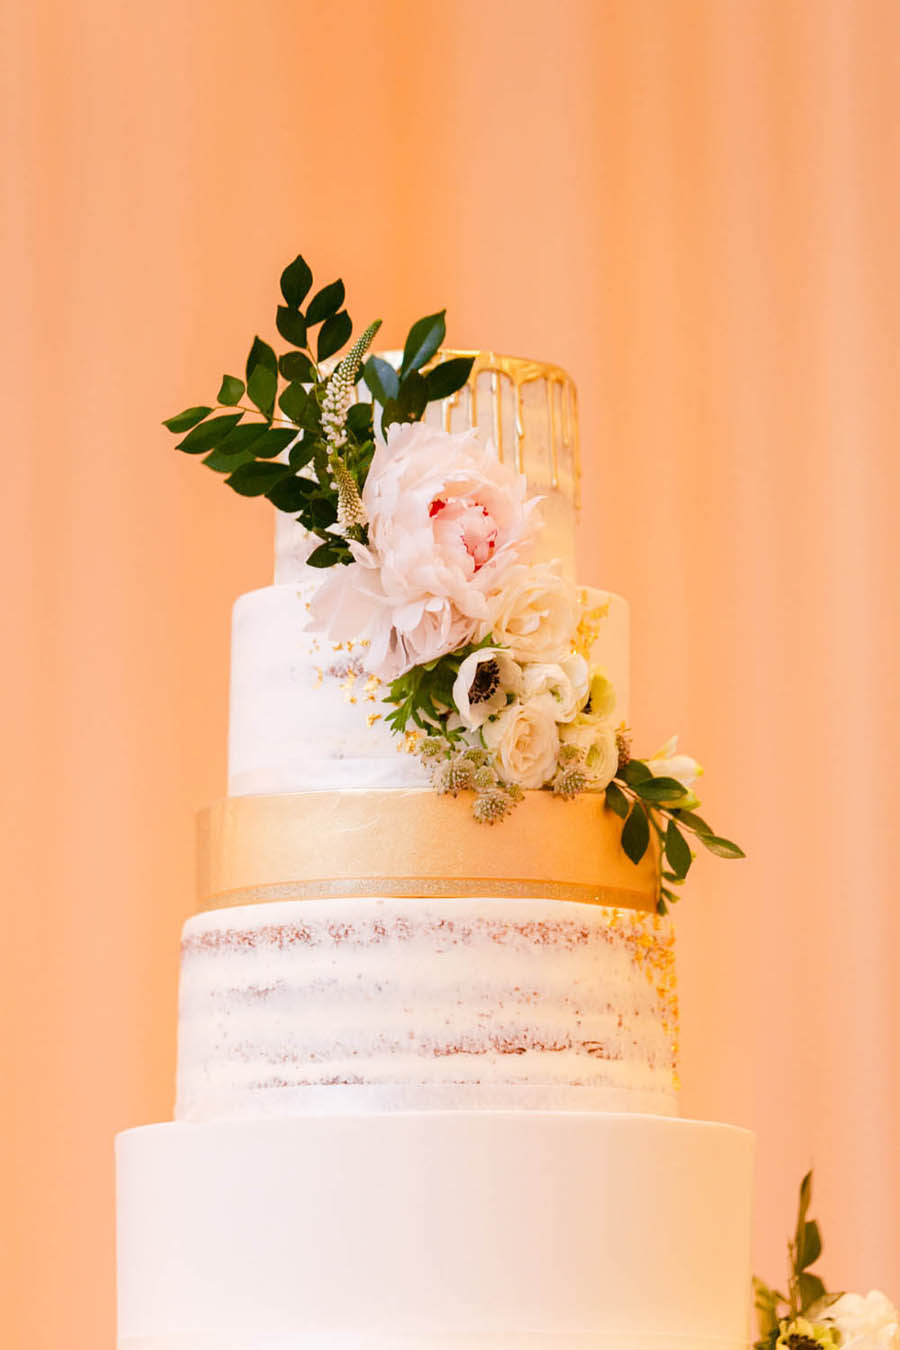 Nine Tier Round White Wedding Cake with Gold Dripping Frosting, White Florals with Greenery   Tarpon Springs Wedding Bakery Artistic Whisk